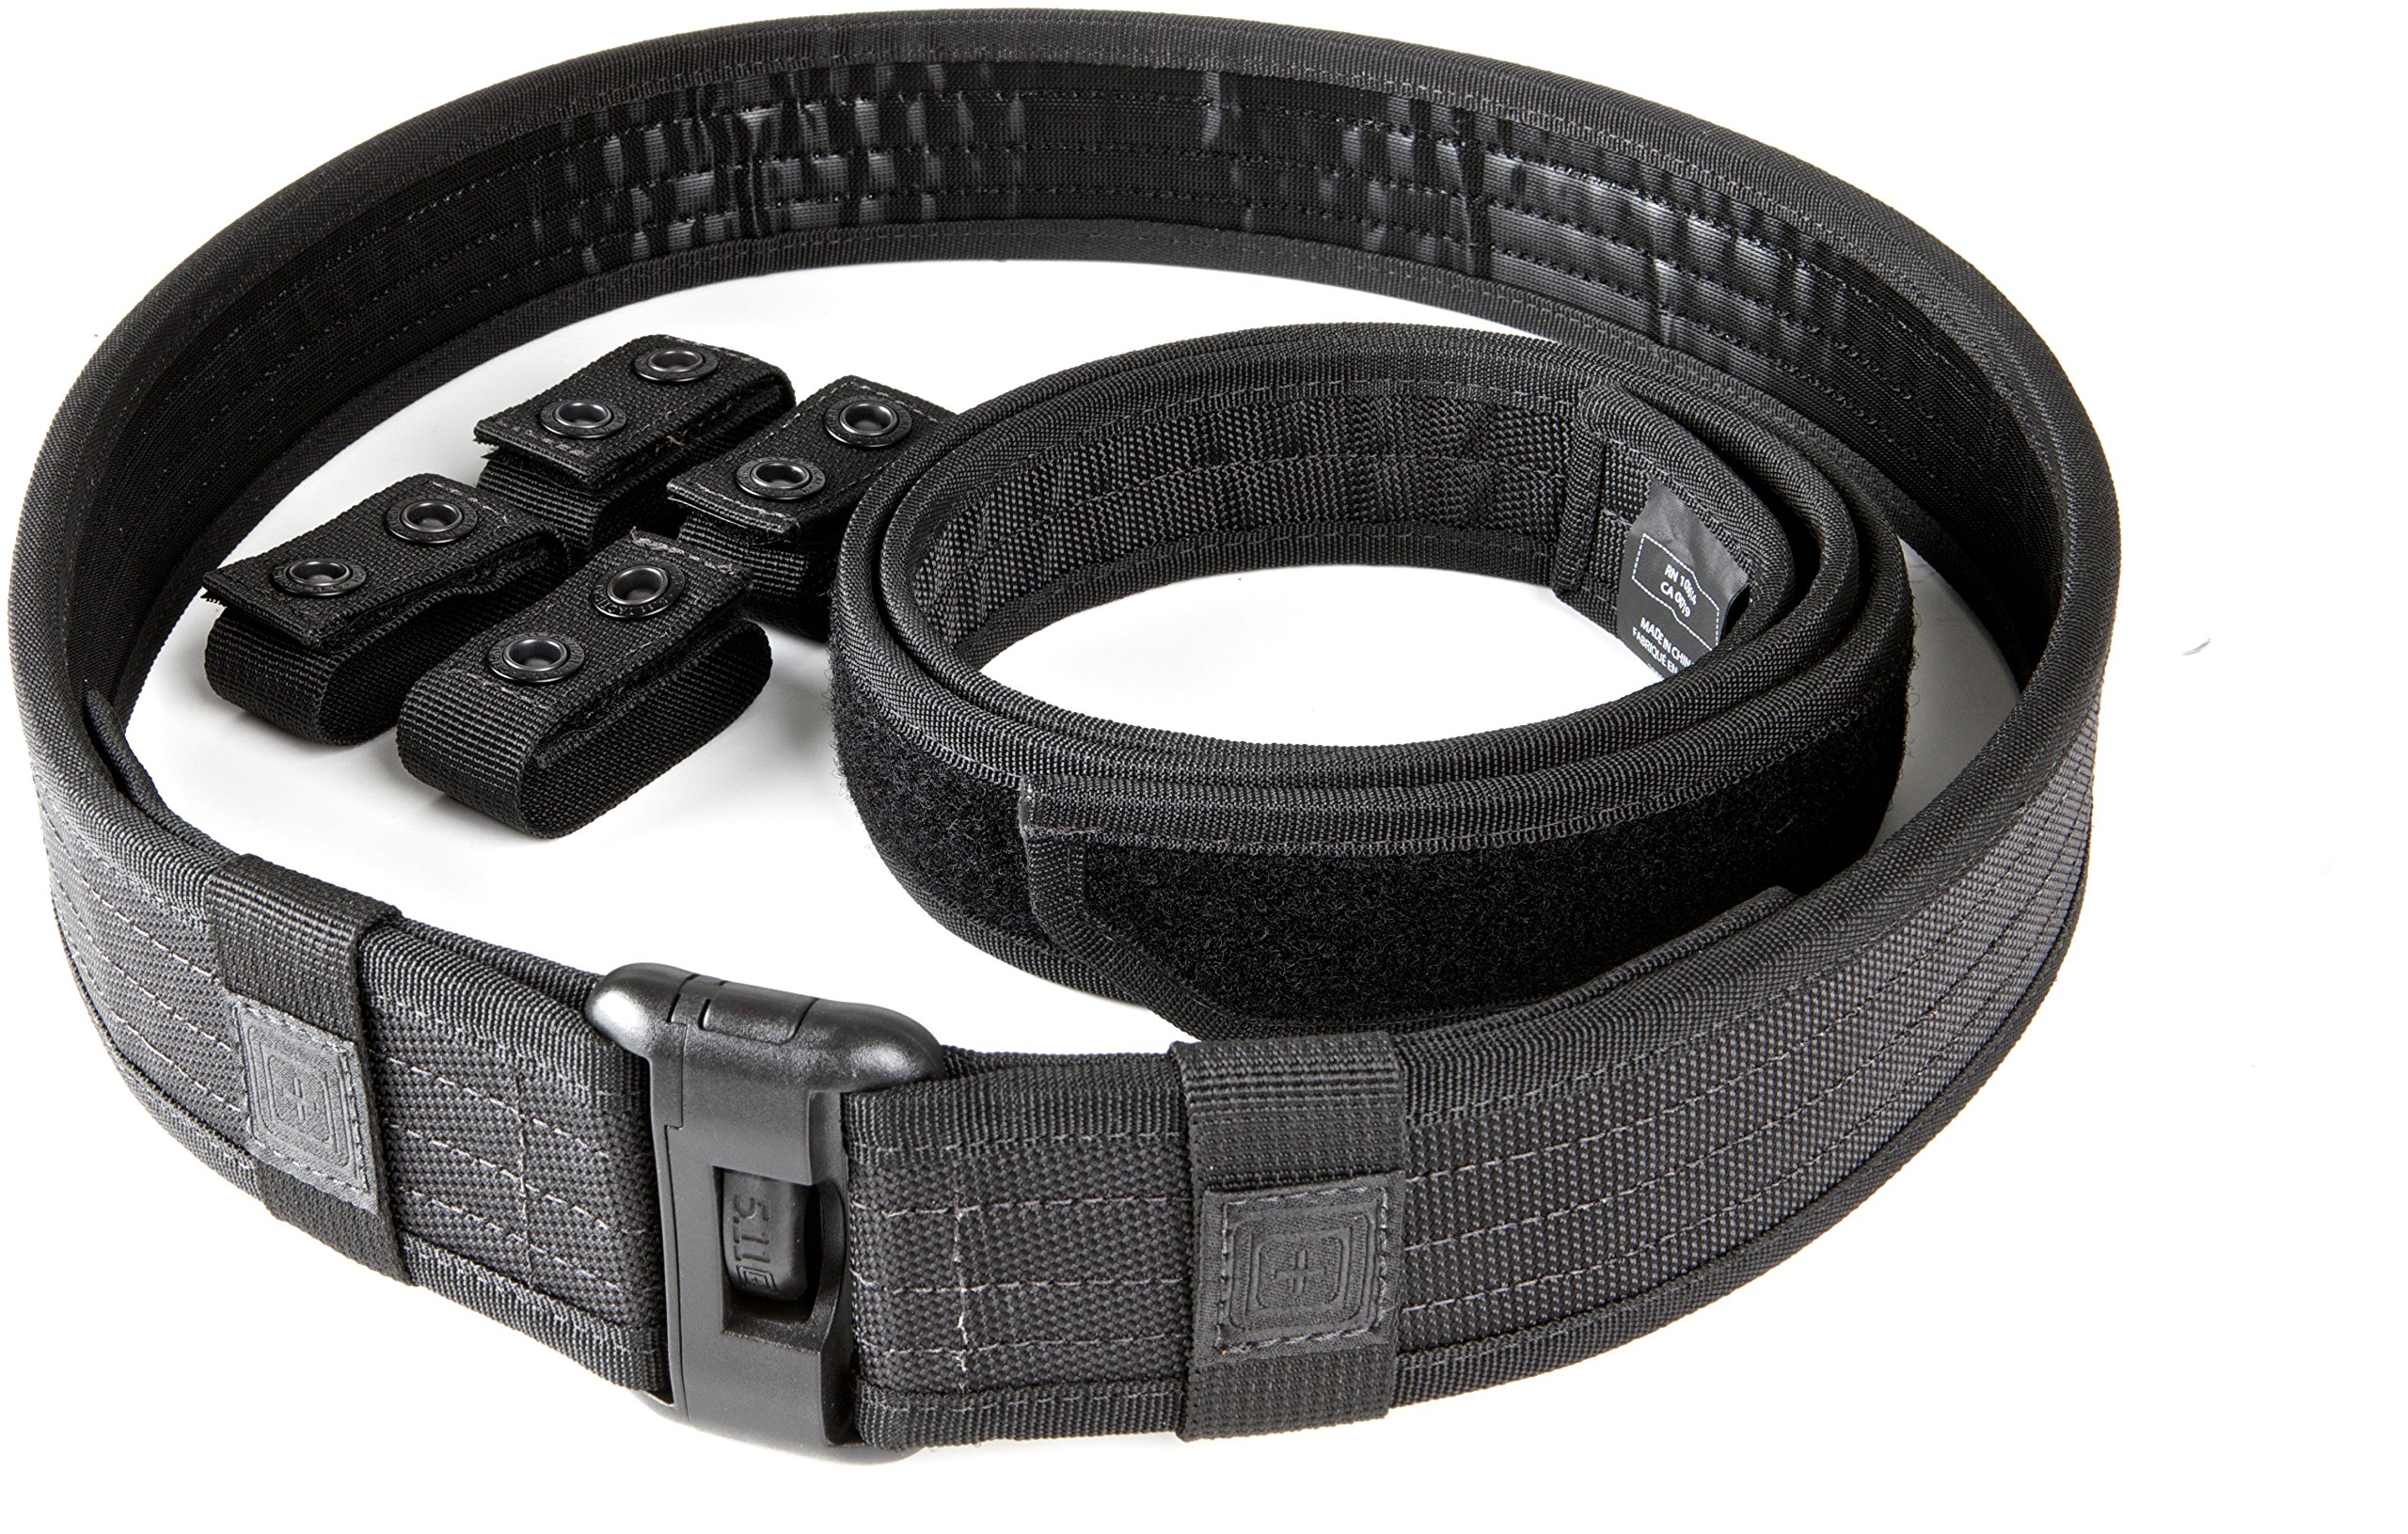 5.11 Tactical Sierra Bravo Duty Law Enforcement Military Belt Kit, Style 59505